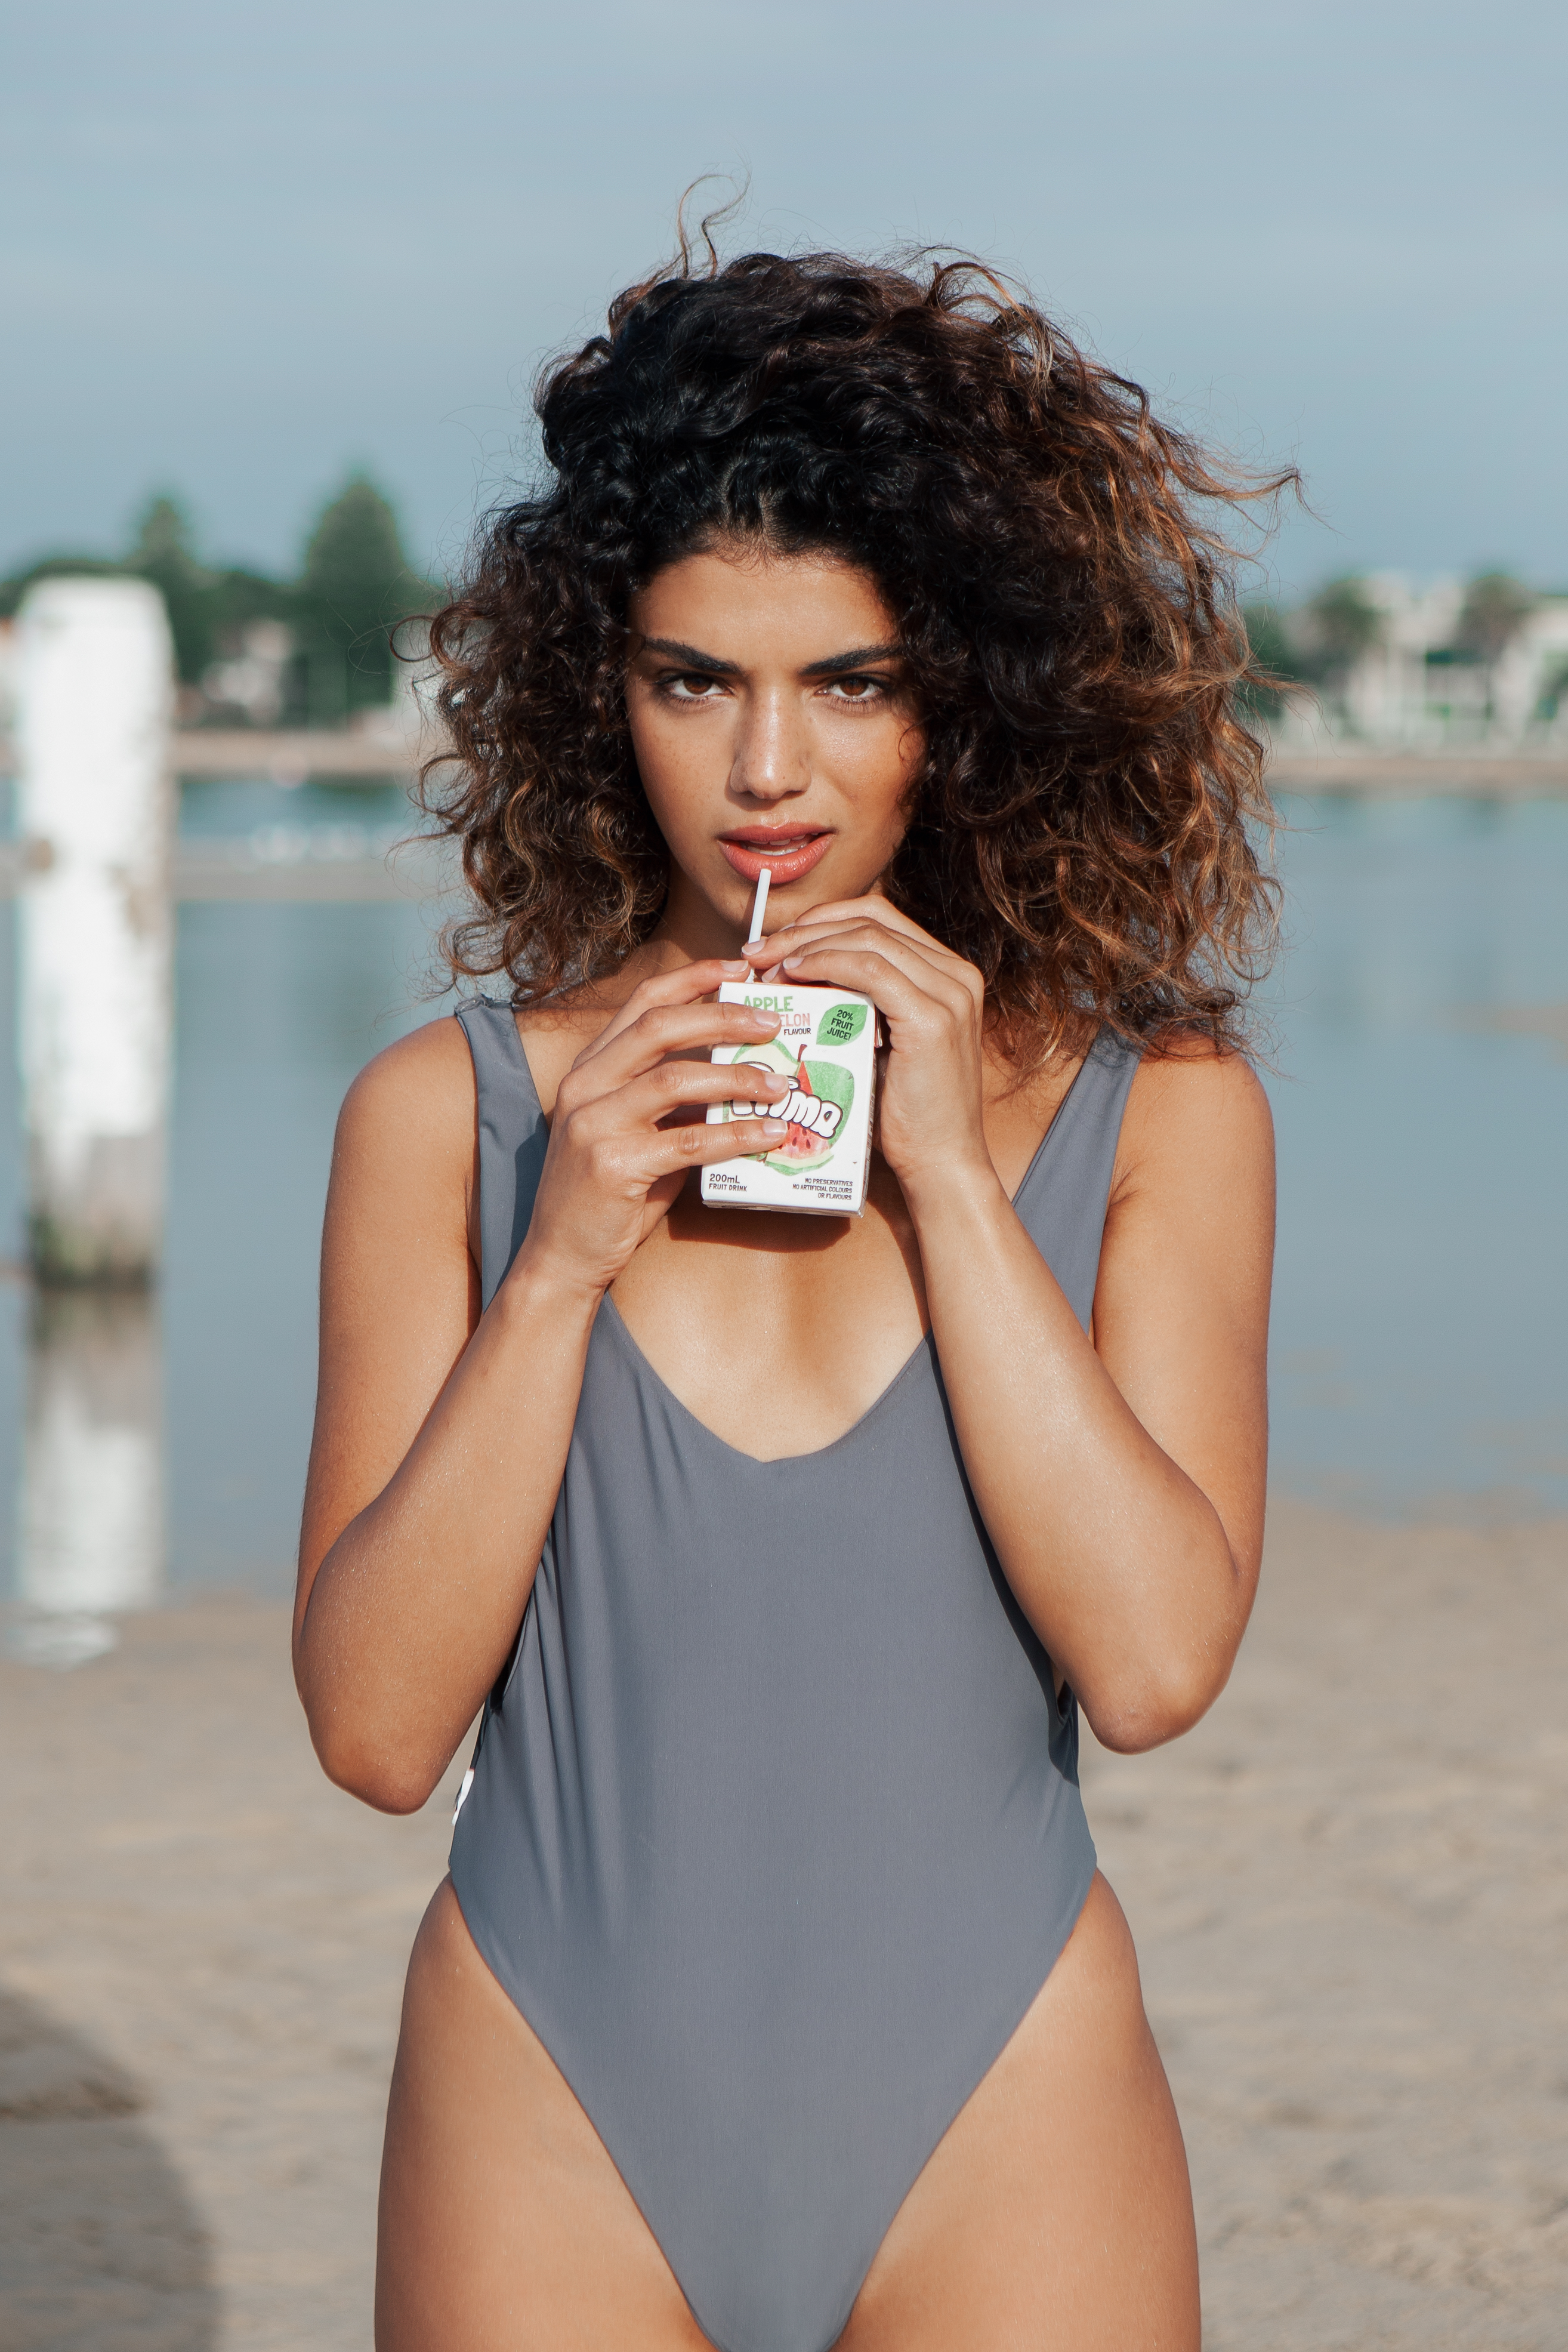 model sipping jukebox wearing grey swimsuit